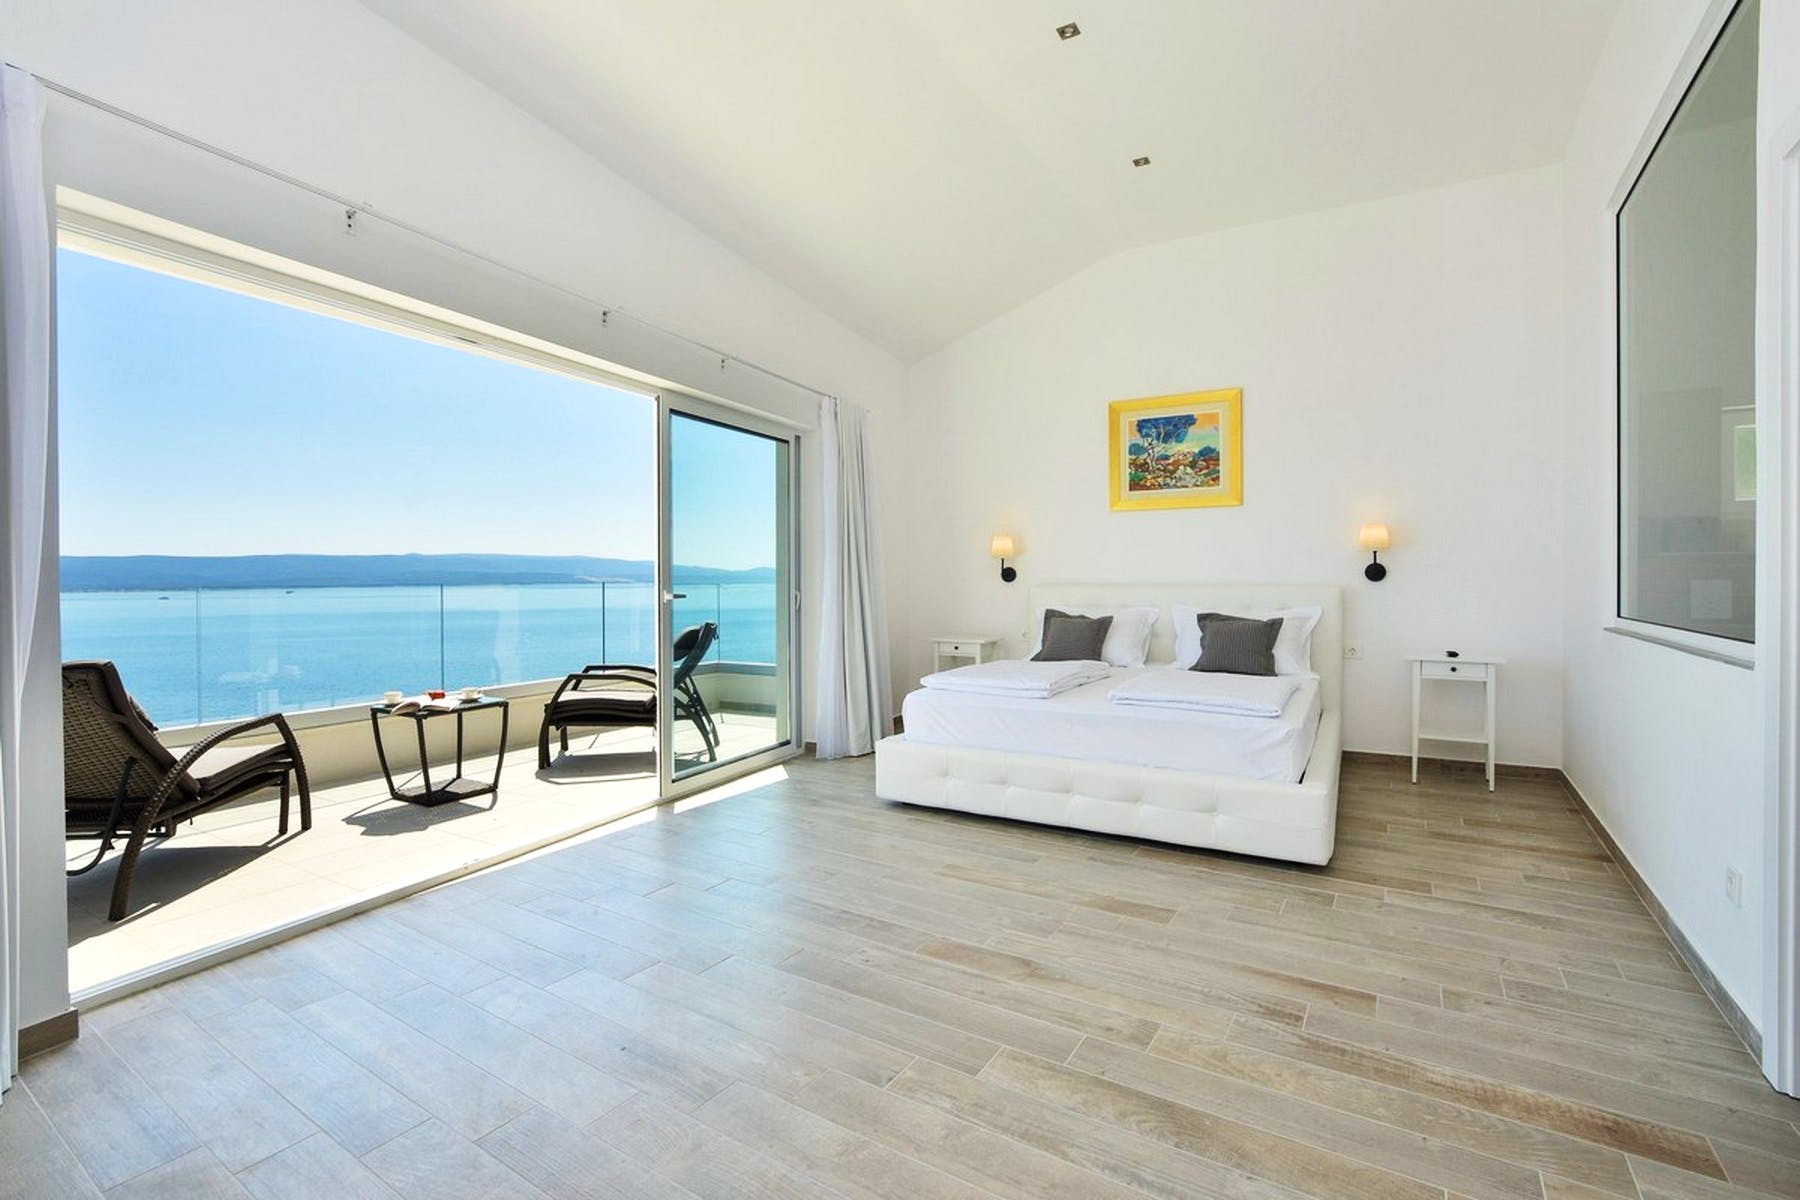 Master bedroom with a terrace